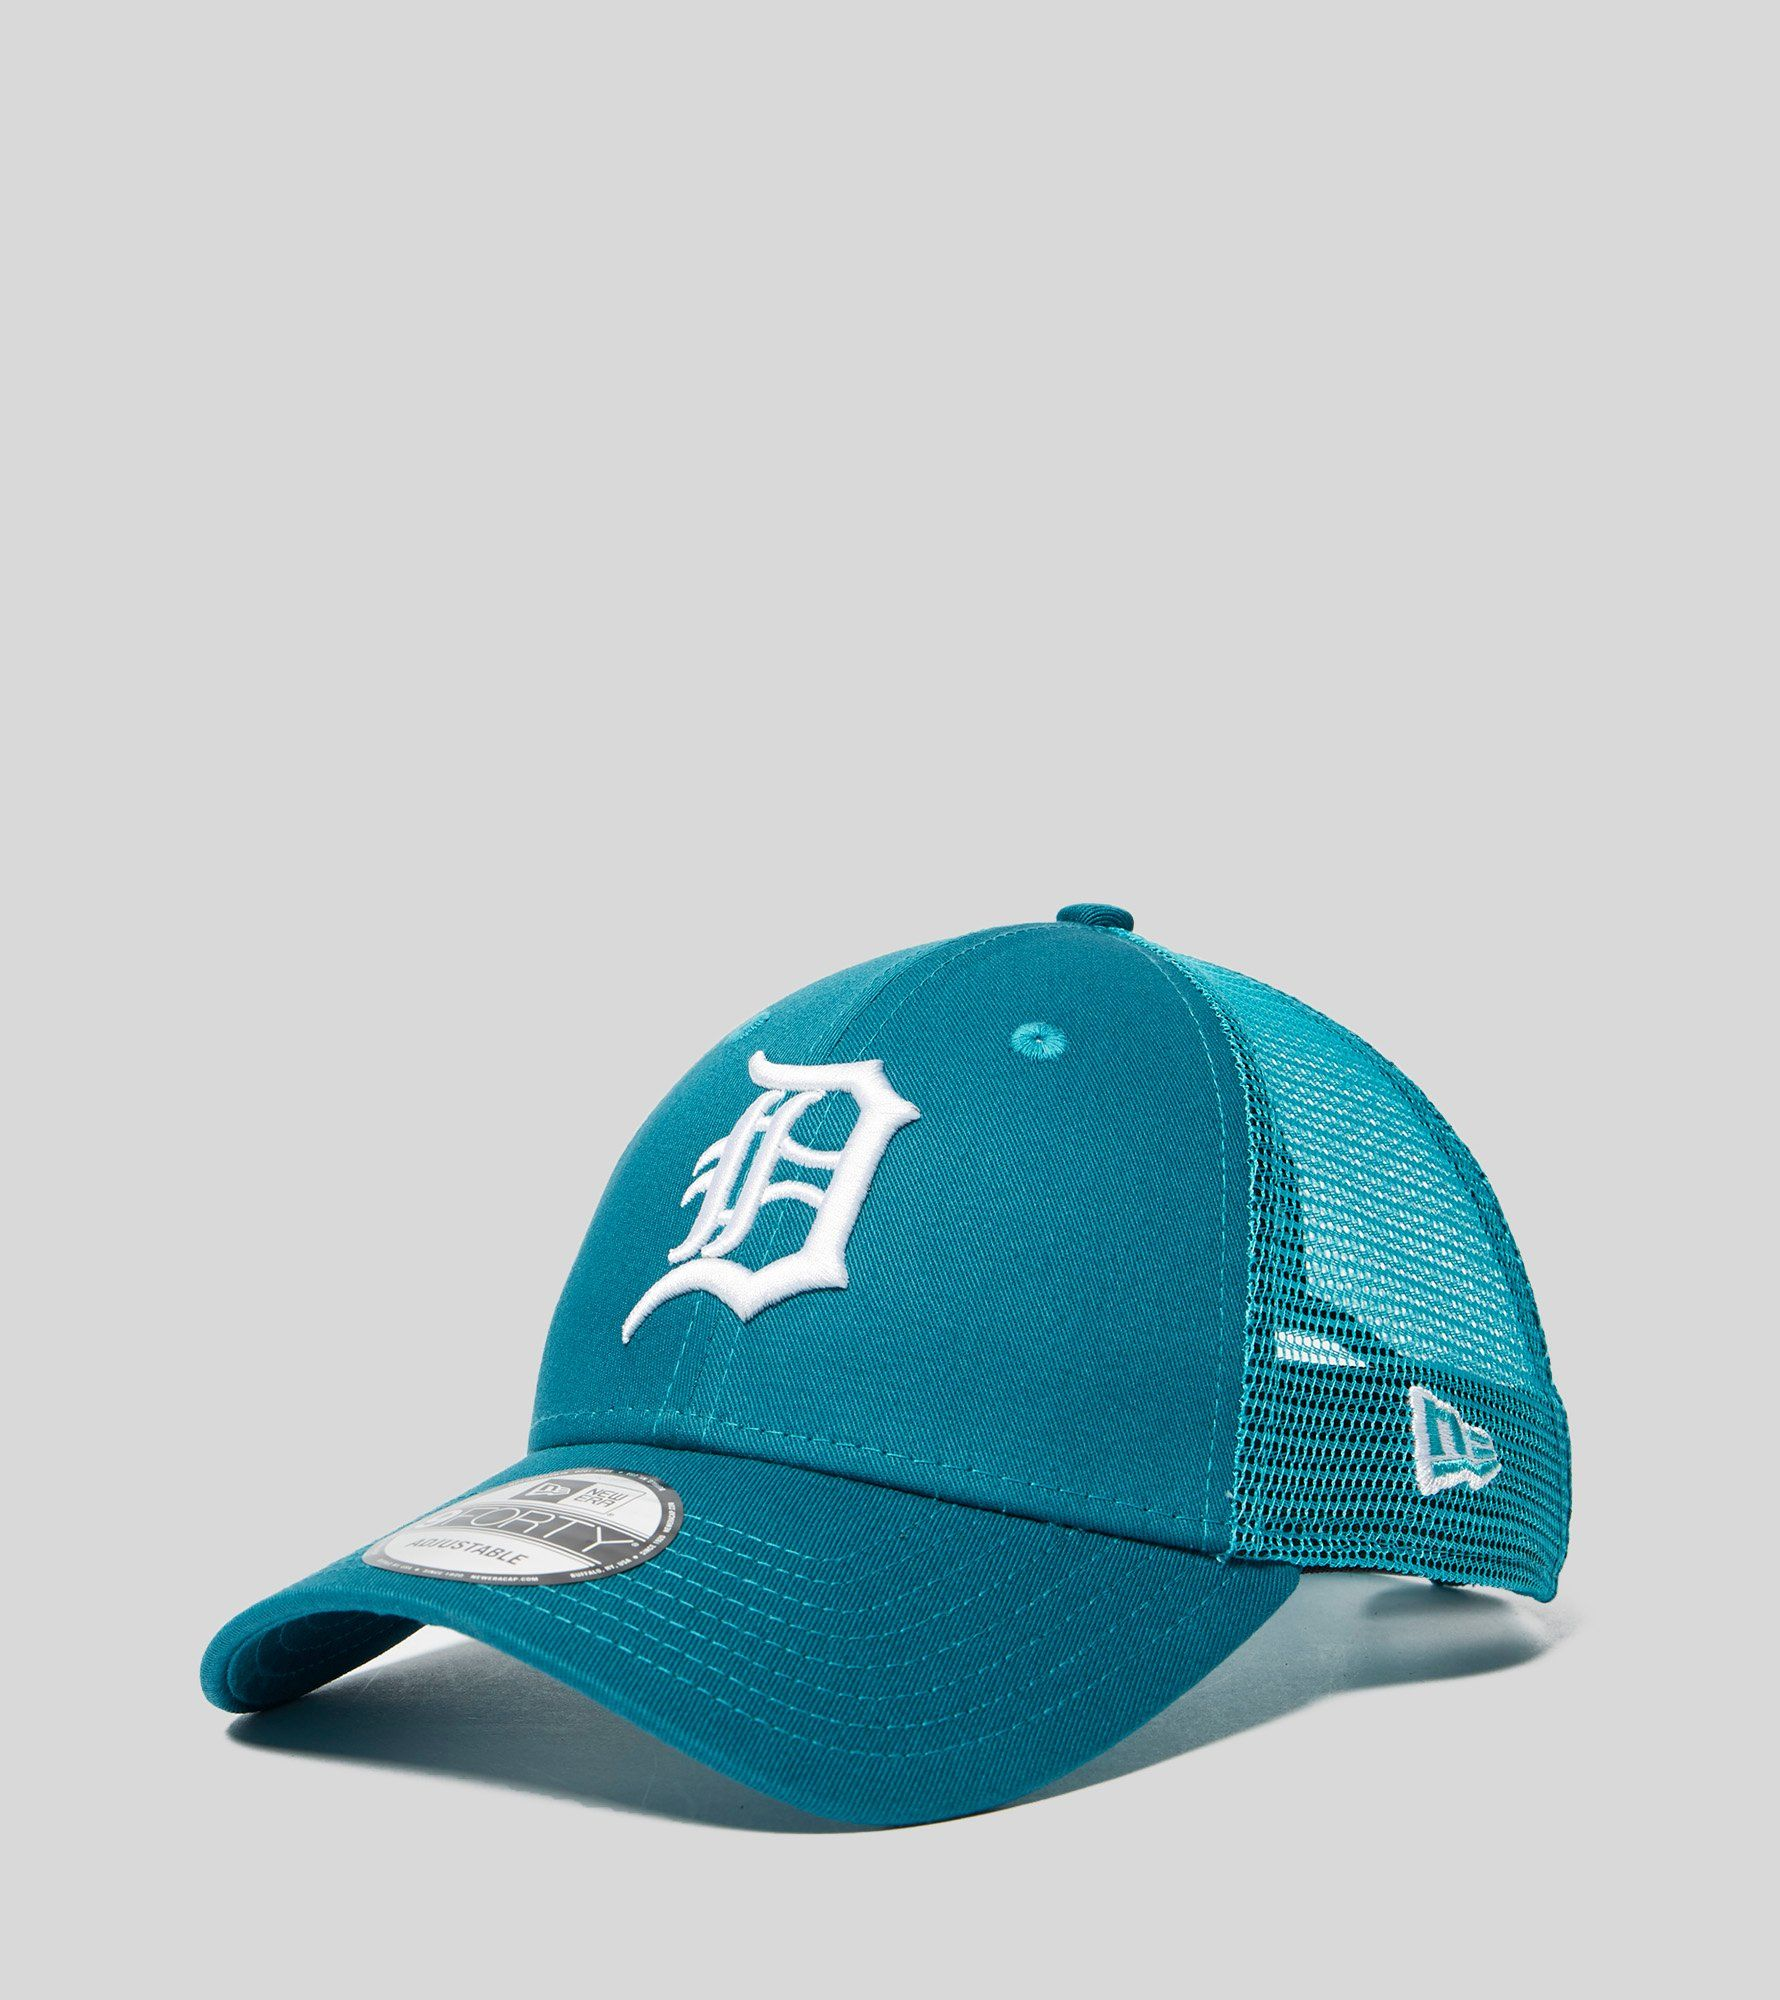 New Era 9FORTY Detroit Tigers Trucker Cap -size? Exclusive